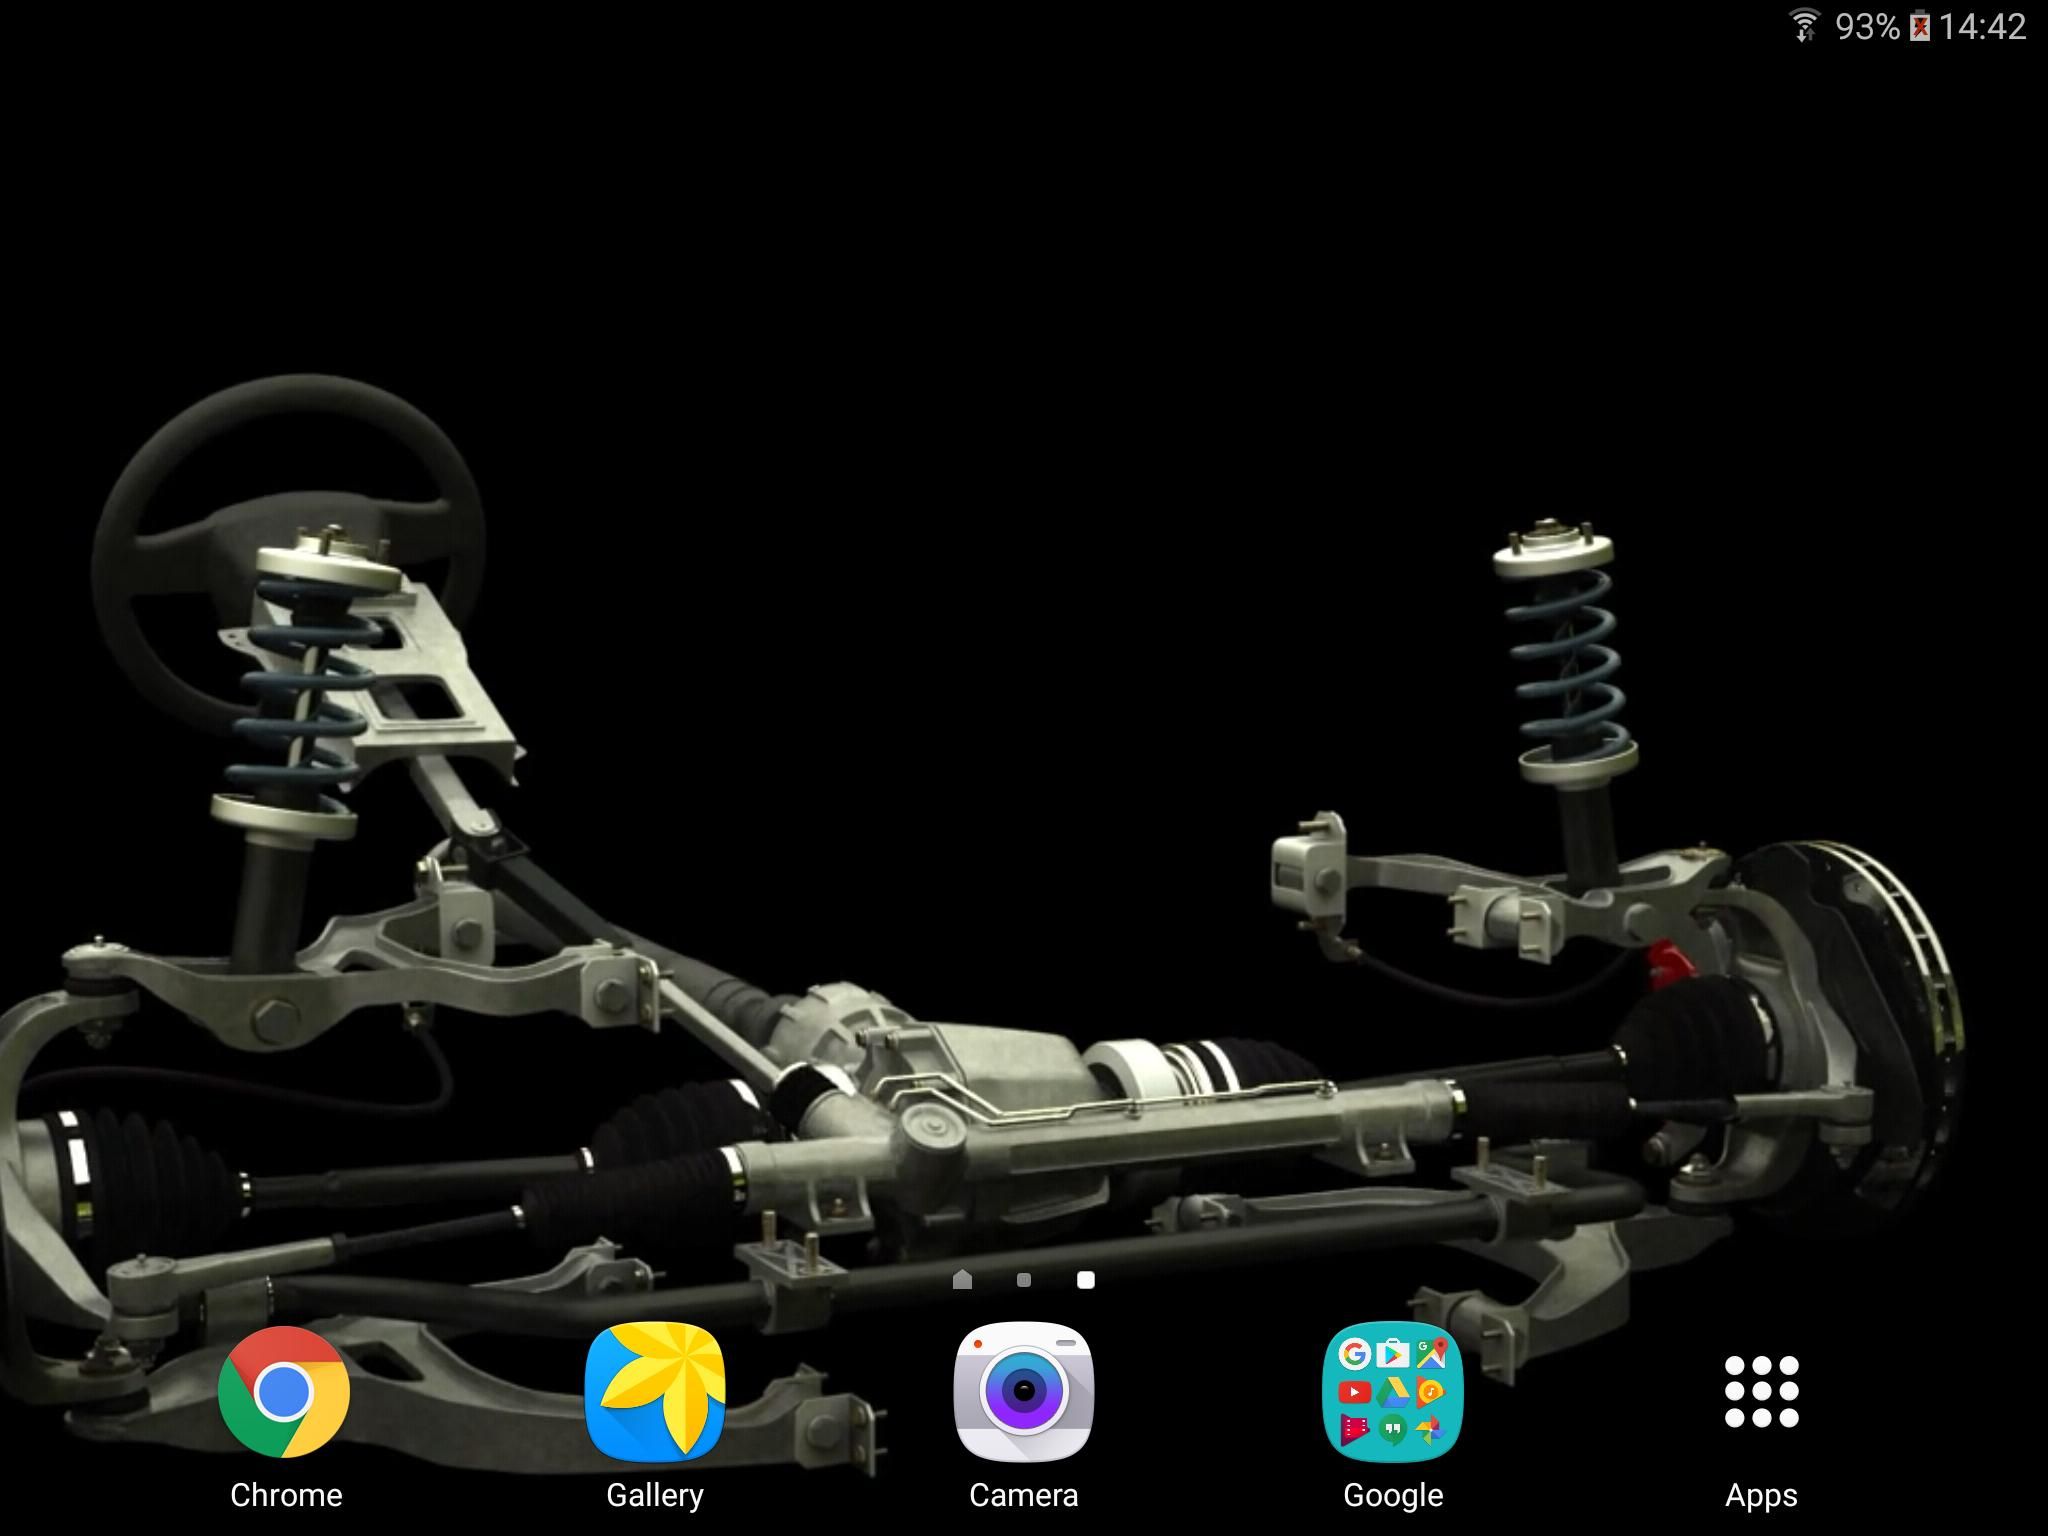 Download 4000 Wallpaper Android Otomotif HD